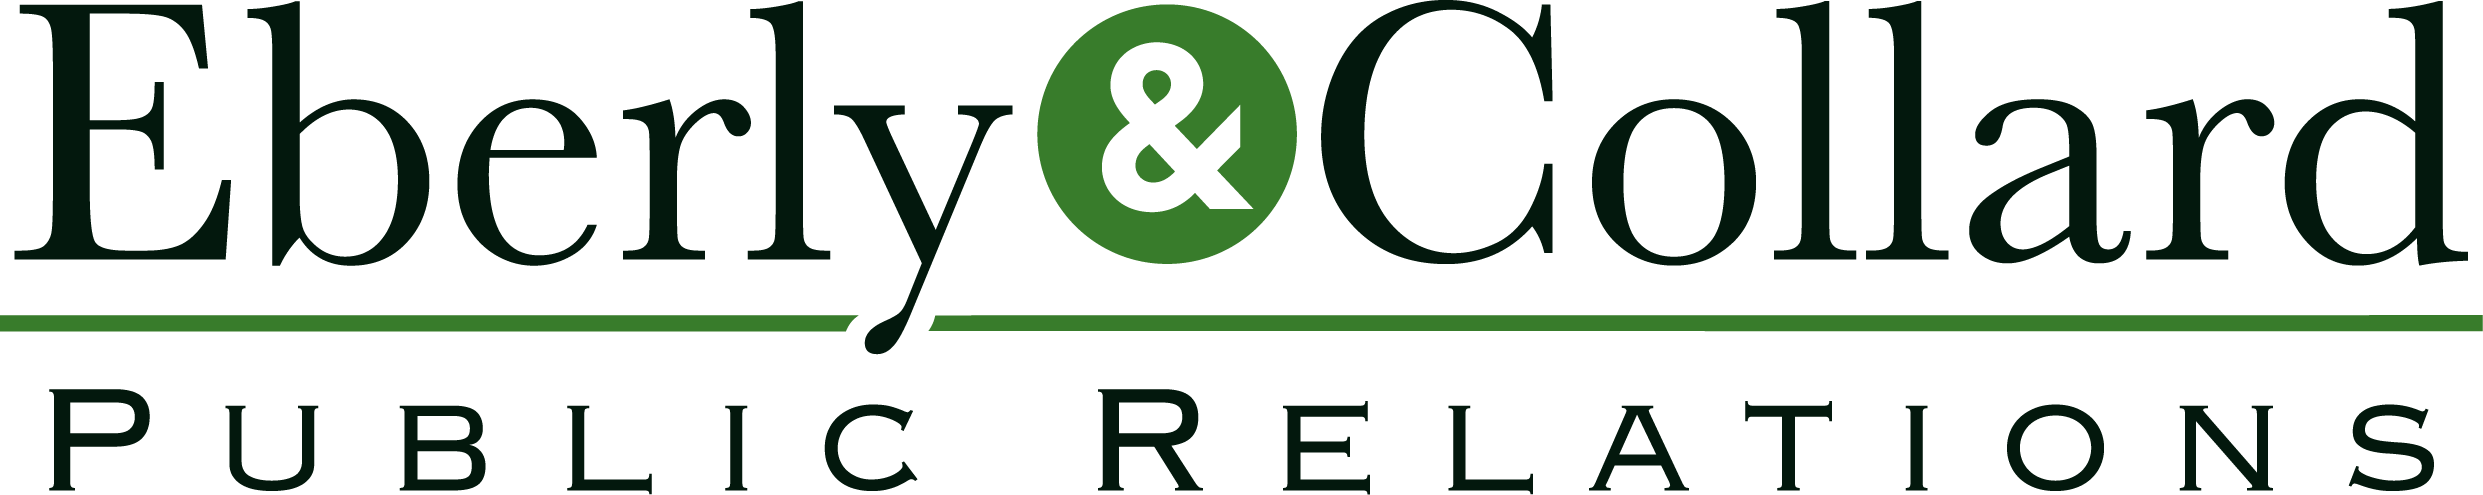 Eberly & Collard Public Relations Logo